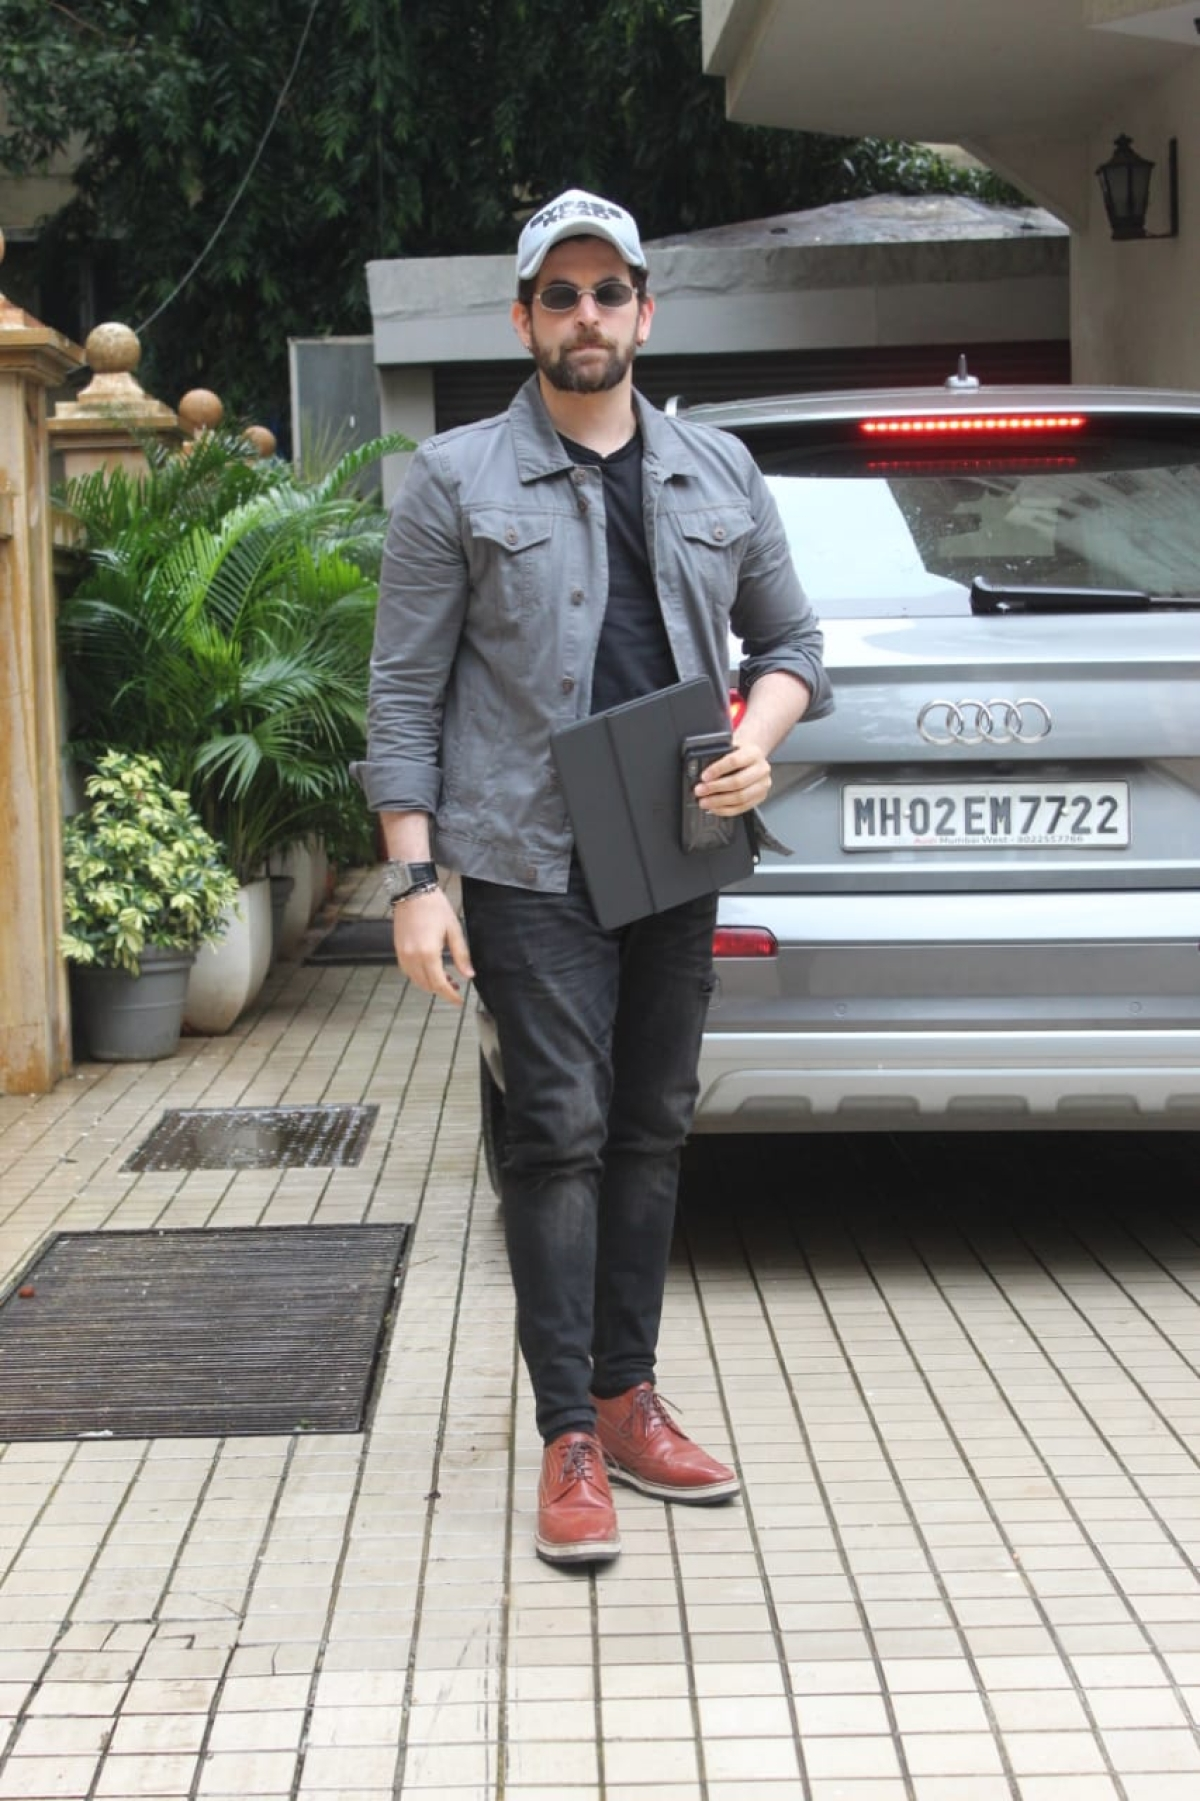 Actor Neil Nitin Mukesh was spotted outside a dubbing studio in Khar. It is unsure as to which film he was dubbing for.